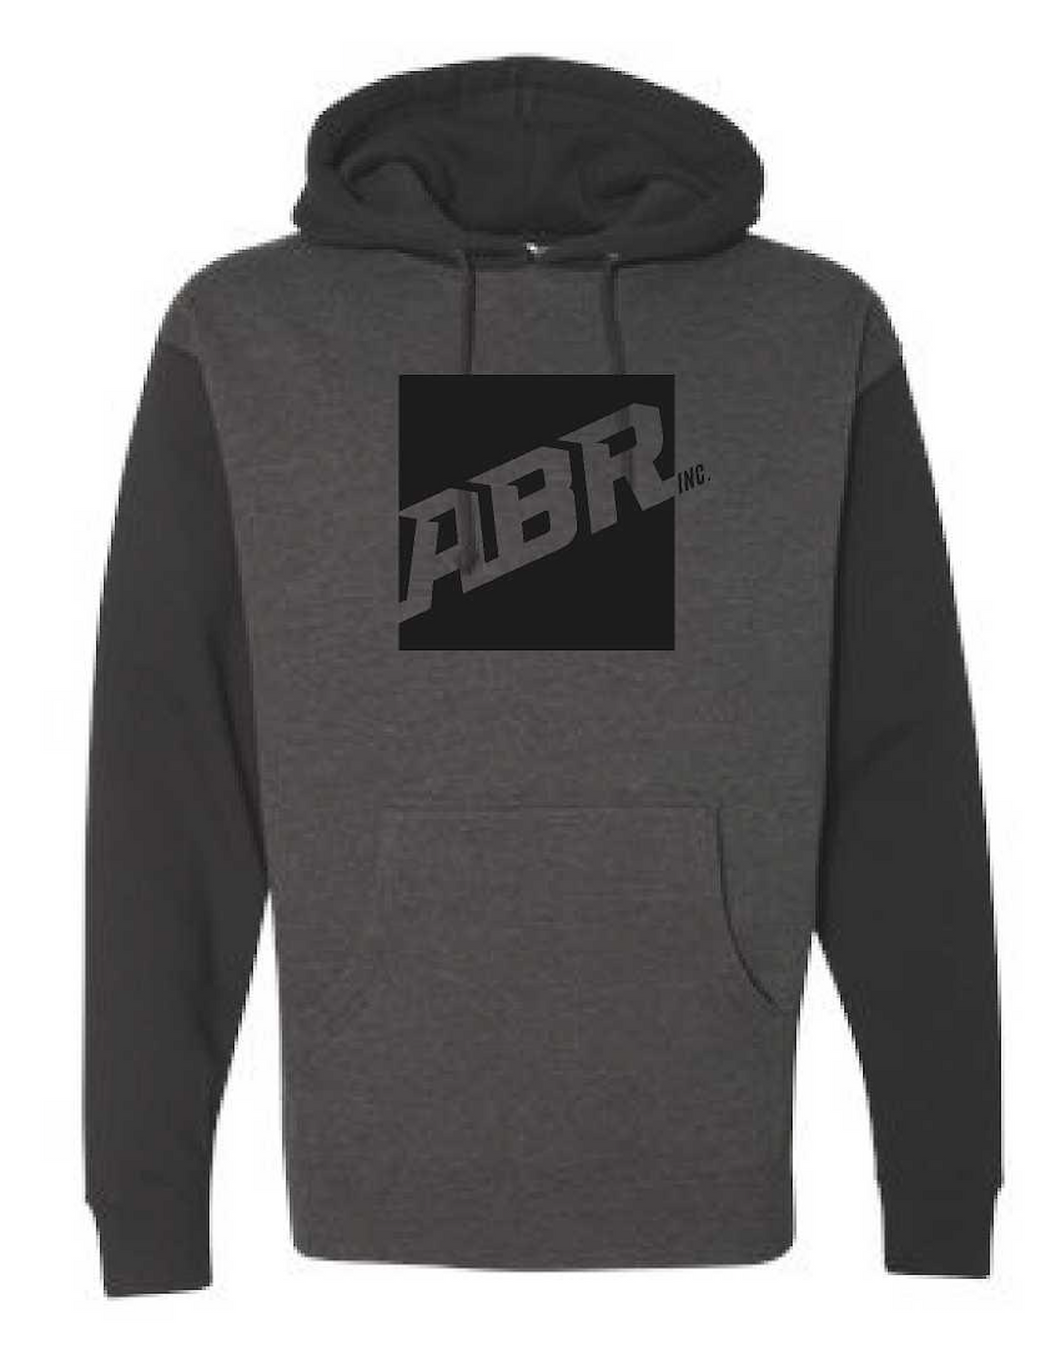 ABR Charcoal Hoodie